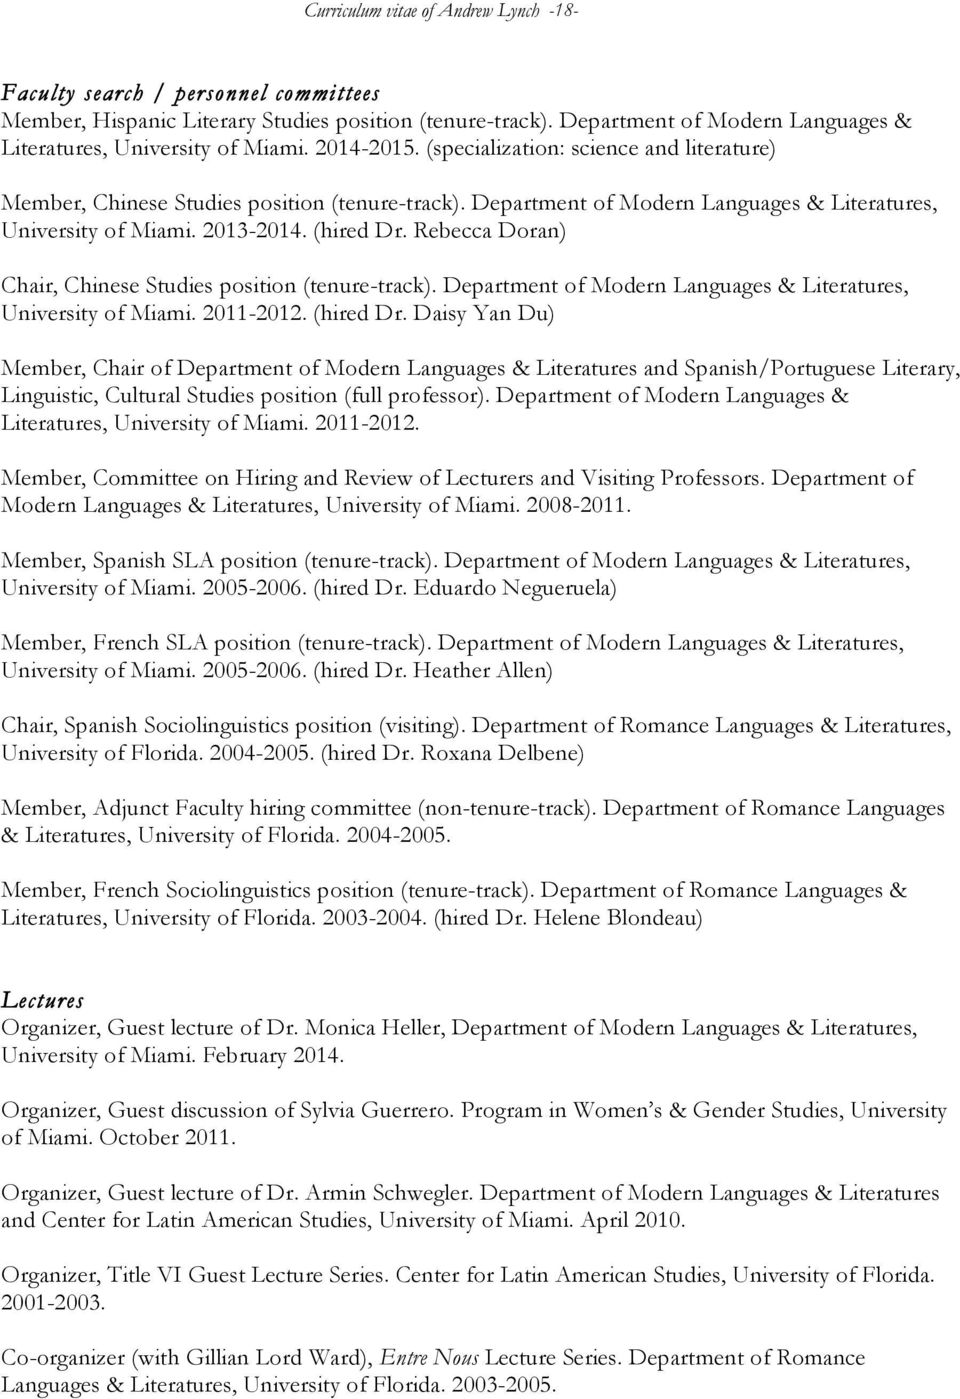 JANUARY 15, 2015 Curriculum vitae of. Andrew Lynch - PDF